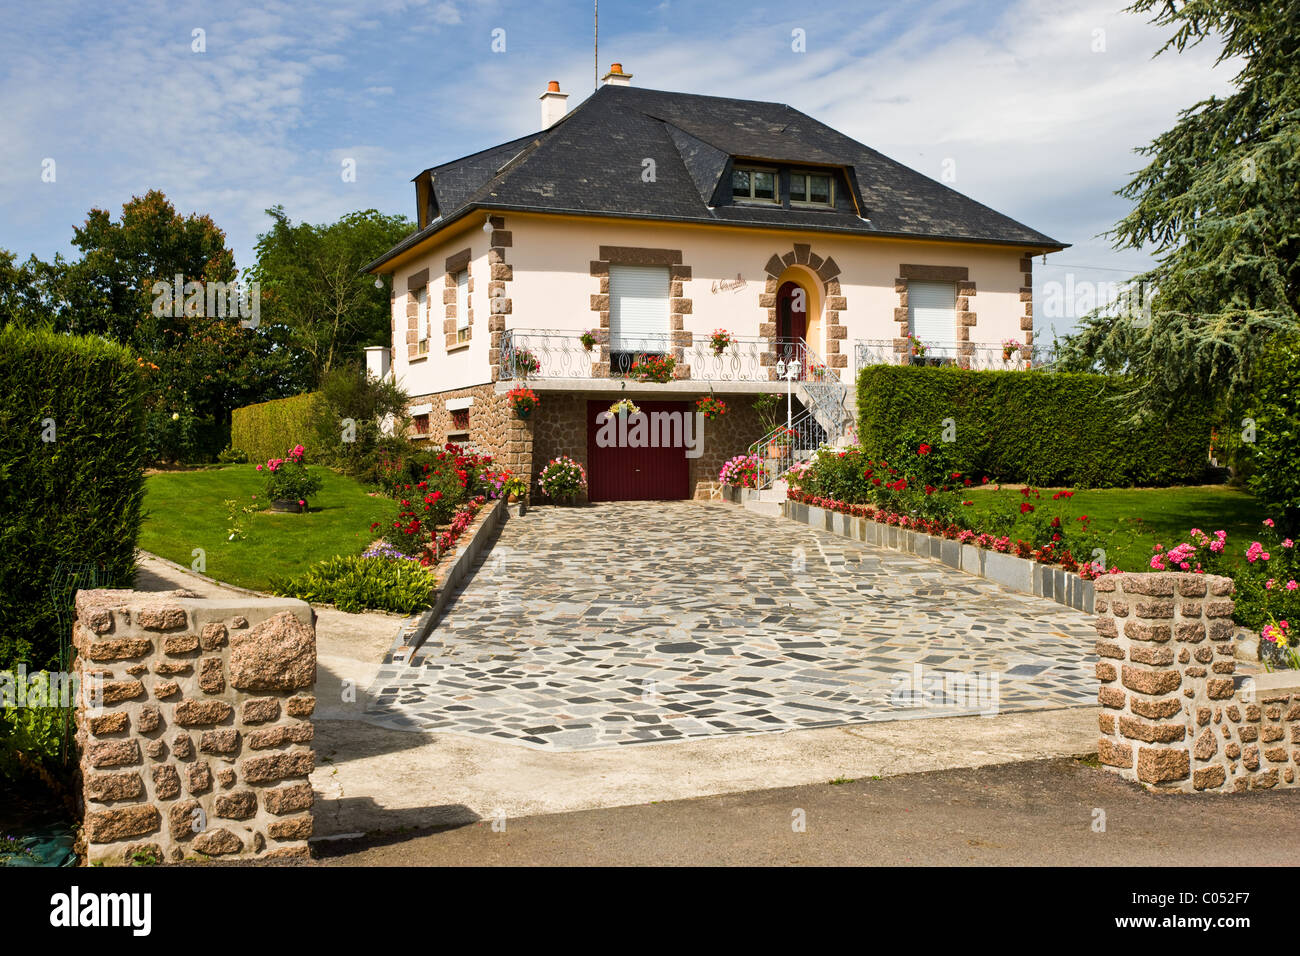 Typical French modern house in period style at Ernee in Normandy, France - Stock Image